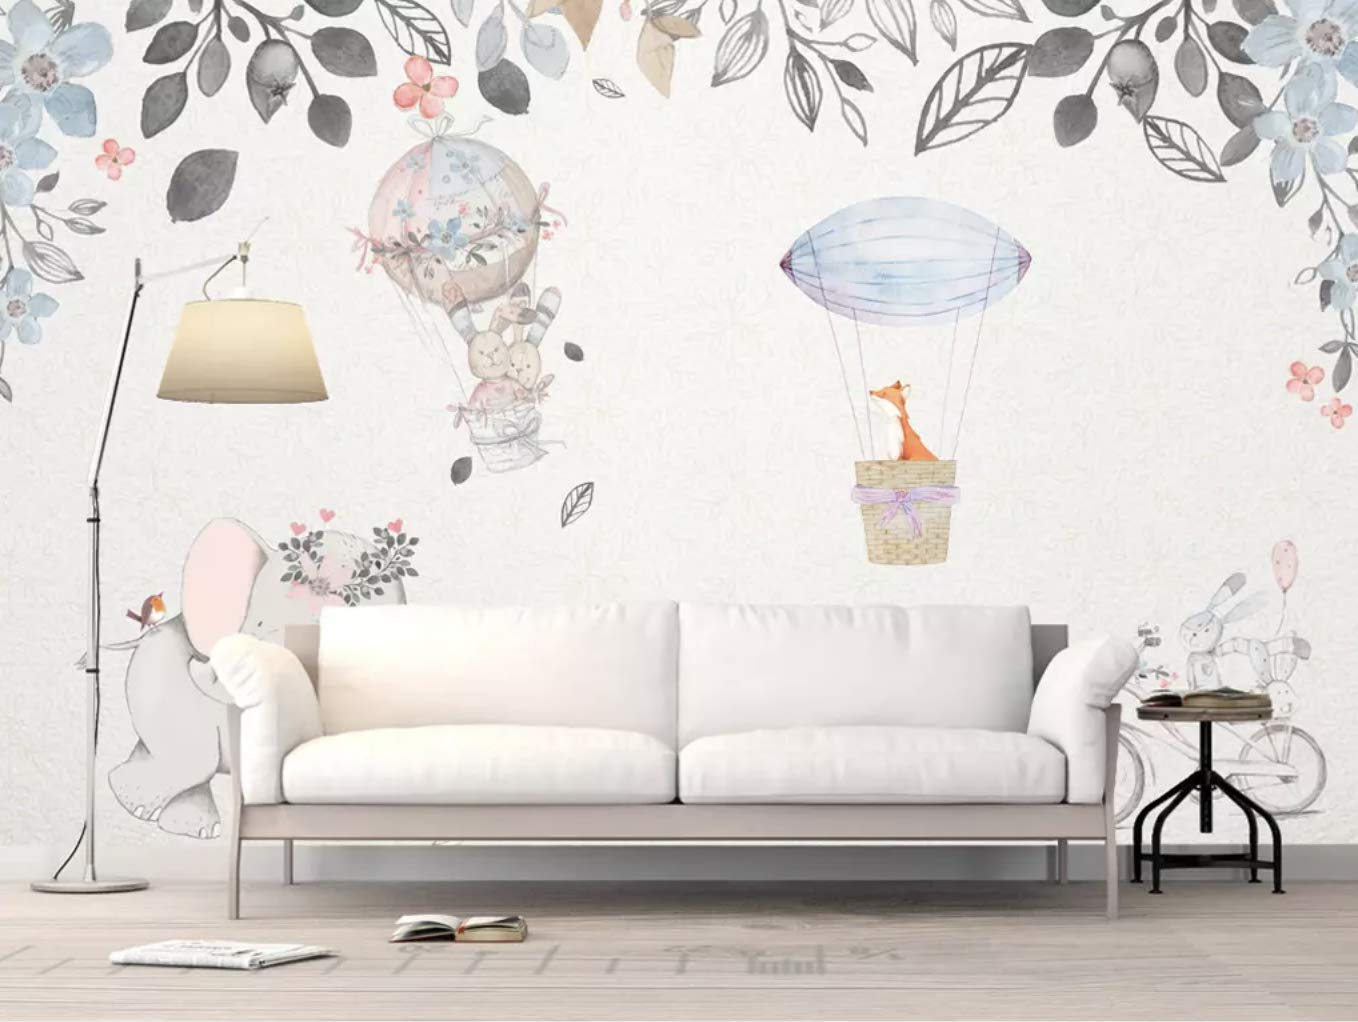 Amazon.com: Murwall Kids Wallpaper Animals Wall Mural Nursery Hot Air Balloon Wall Art Elephant Rabbit Wall Painting Girls Boys Bedroom Baby Room Wall Decor: Handmade